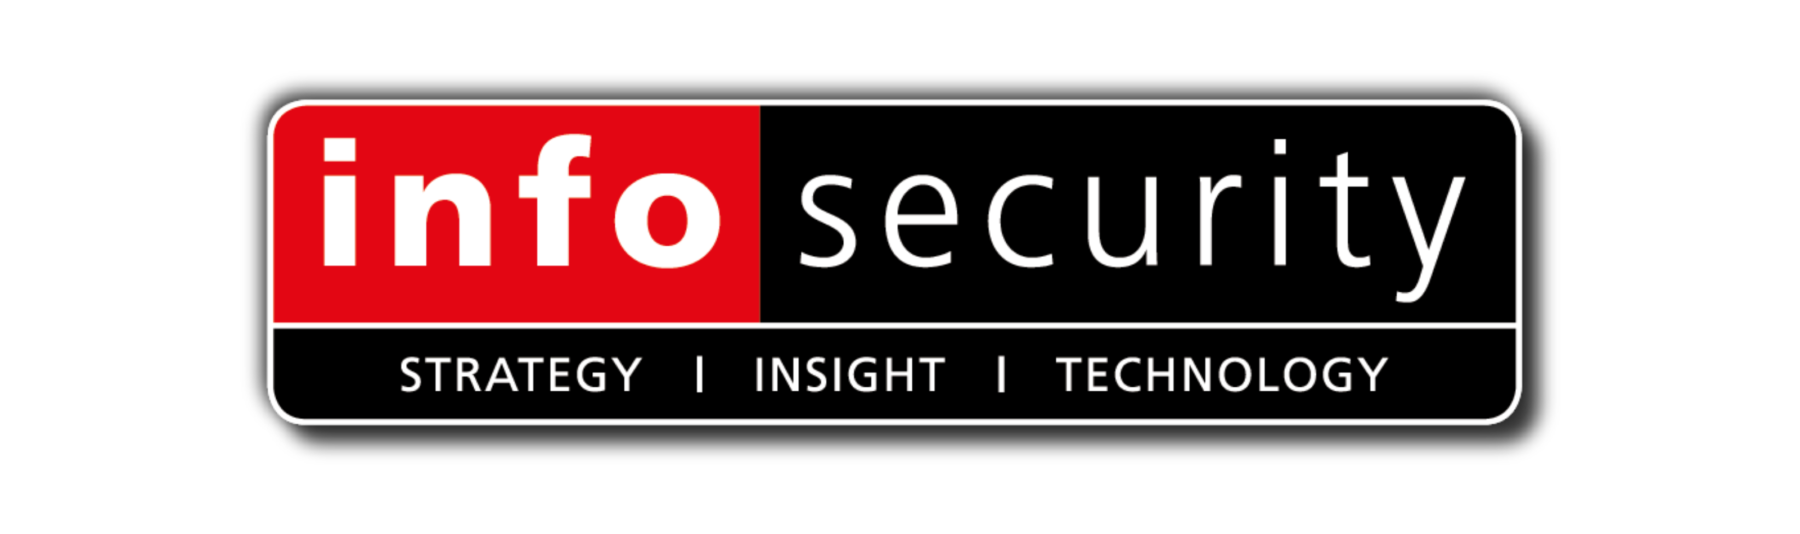 Smile On Fridays secured coverage in Infosecurity Magazine for OneLogin!